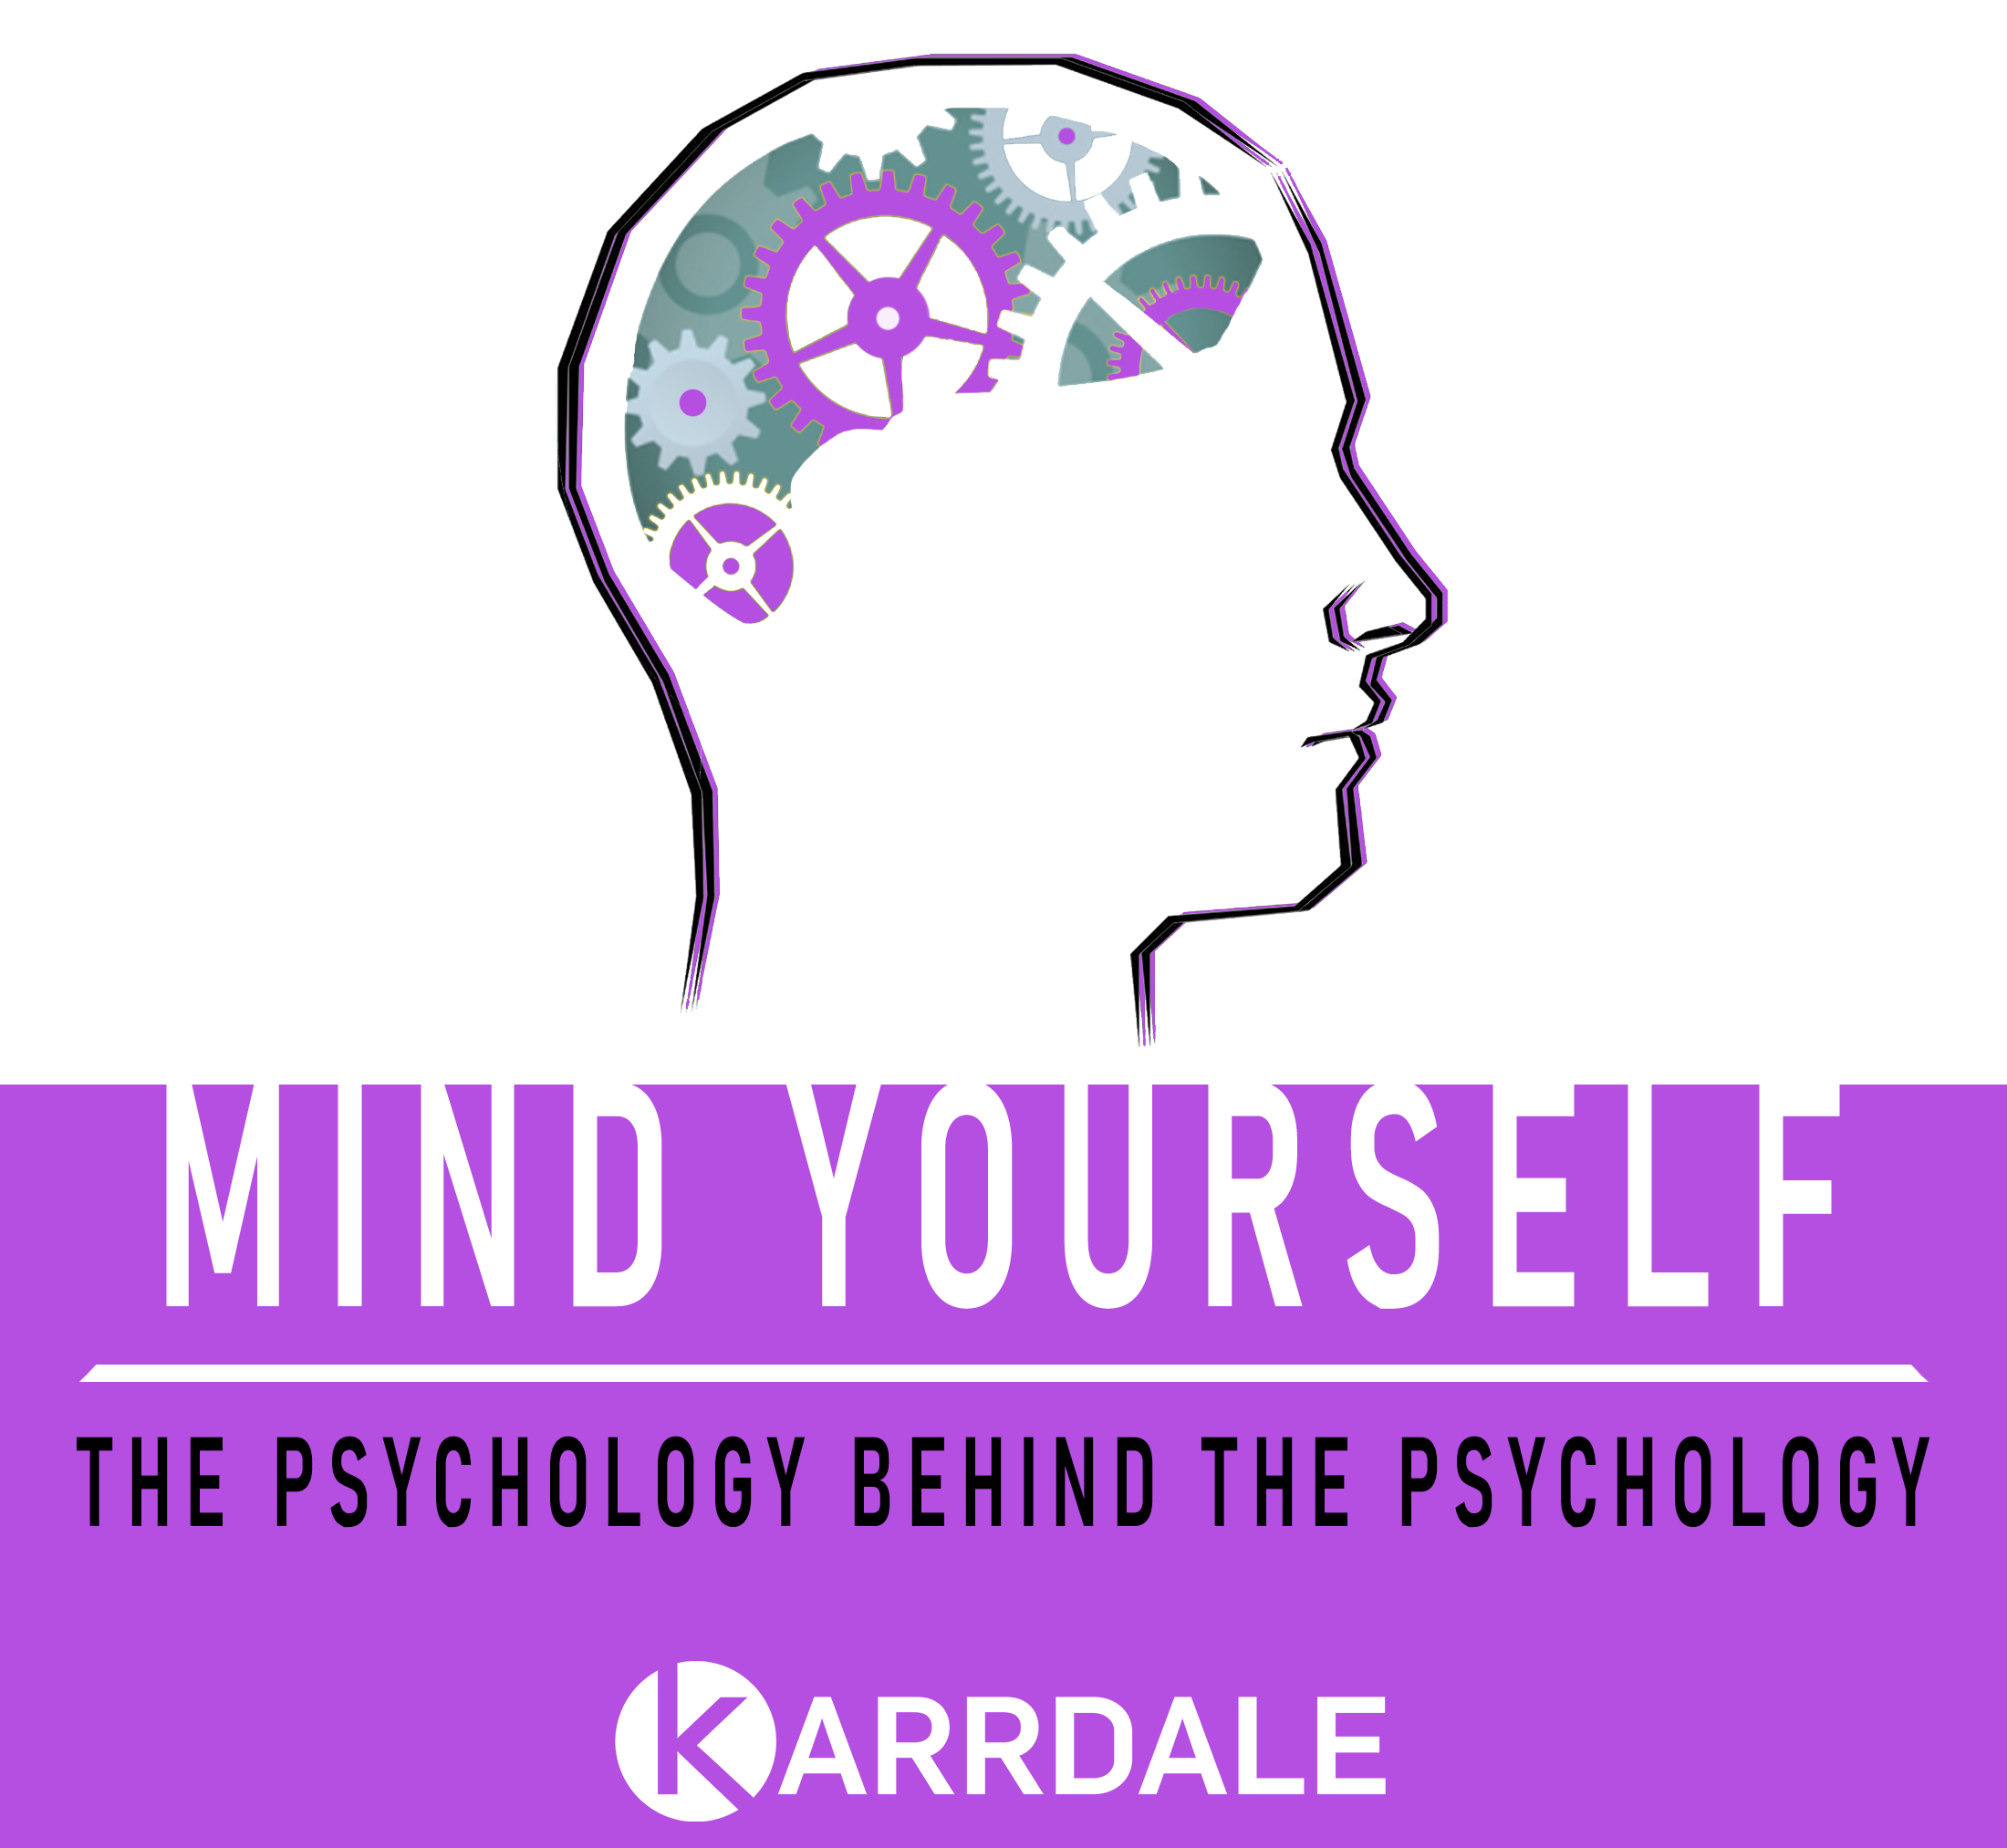 Mind Yourself - The Psychology Behind The Psychology - Audio Program - We are proud to announce the release of our brand new audio programme 'Mind Yourself'.With the current stresses on health professionals, there are many people struggling to make first contact support in relation to mental wellbeing. For some this could be the wait for an appointment, others may feel embarrassed or maybe you are over consumed by work pressures.All our corporate clients are on a wellbeing quest for their staff, deepening understanding and finding new solutions in the arena of wellbeing. We feel it's time for us to build a bridge and reach out to the people in society who are experiencing a first contact dilemma.Our tried and tested methods are easy to understand, apply and by sustaining the techniques our methods kick off the process of change. To try and help, we've produced 'Mind Yourself', which we hope helps you reach within yourself or reach out to enable you to help others.More detailed information and purchasing options can be found HERE